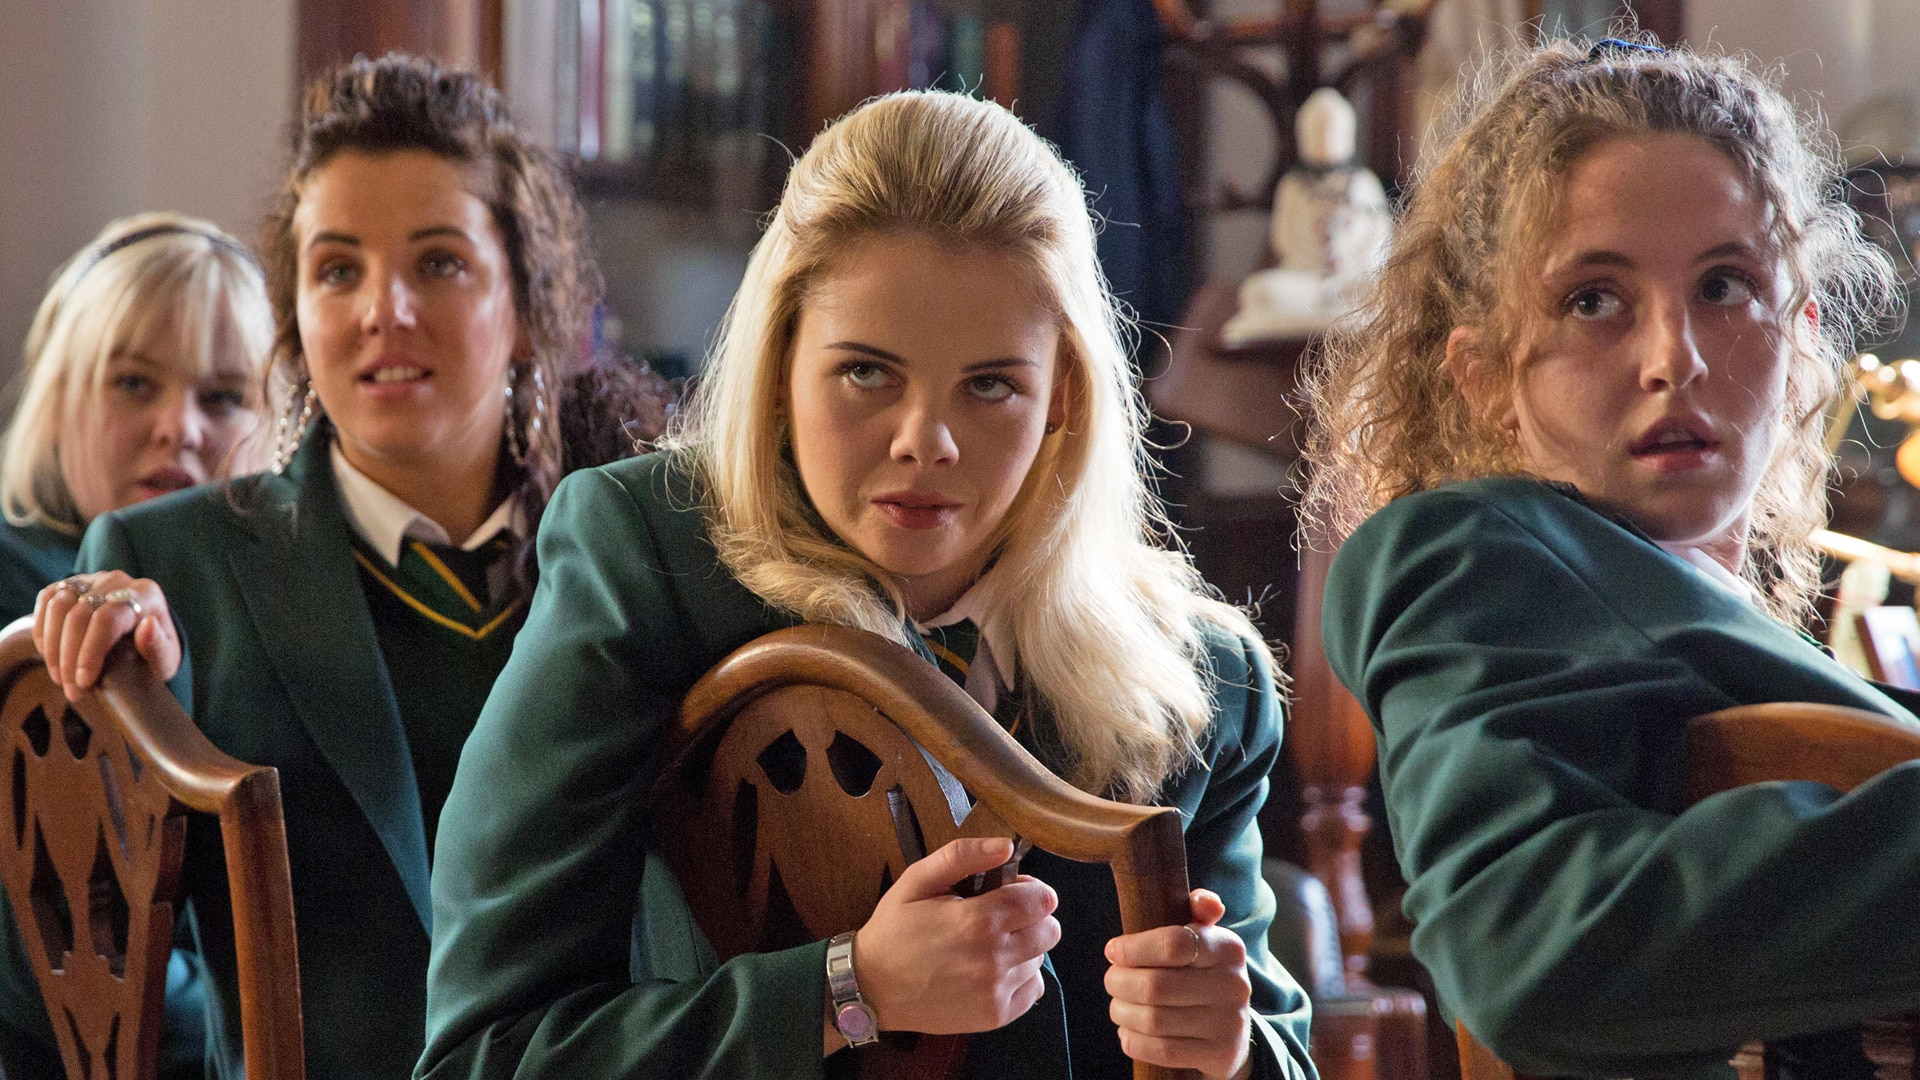 Derry Girls - All 4